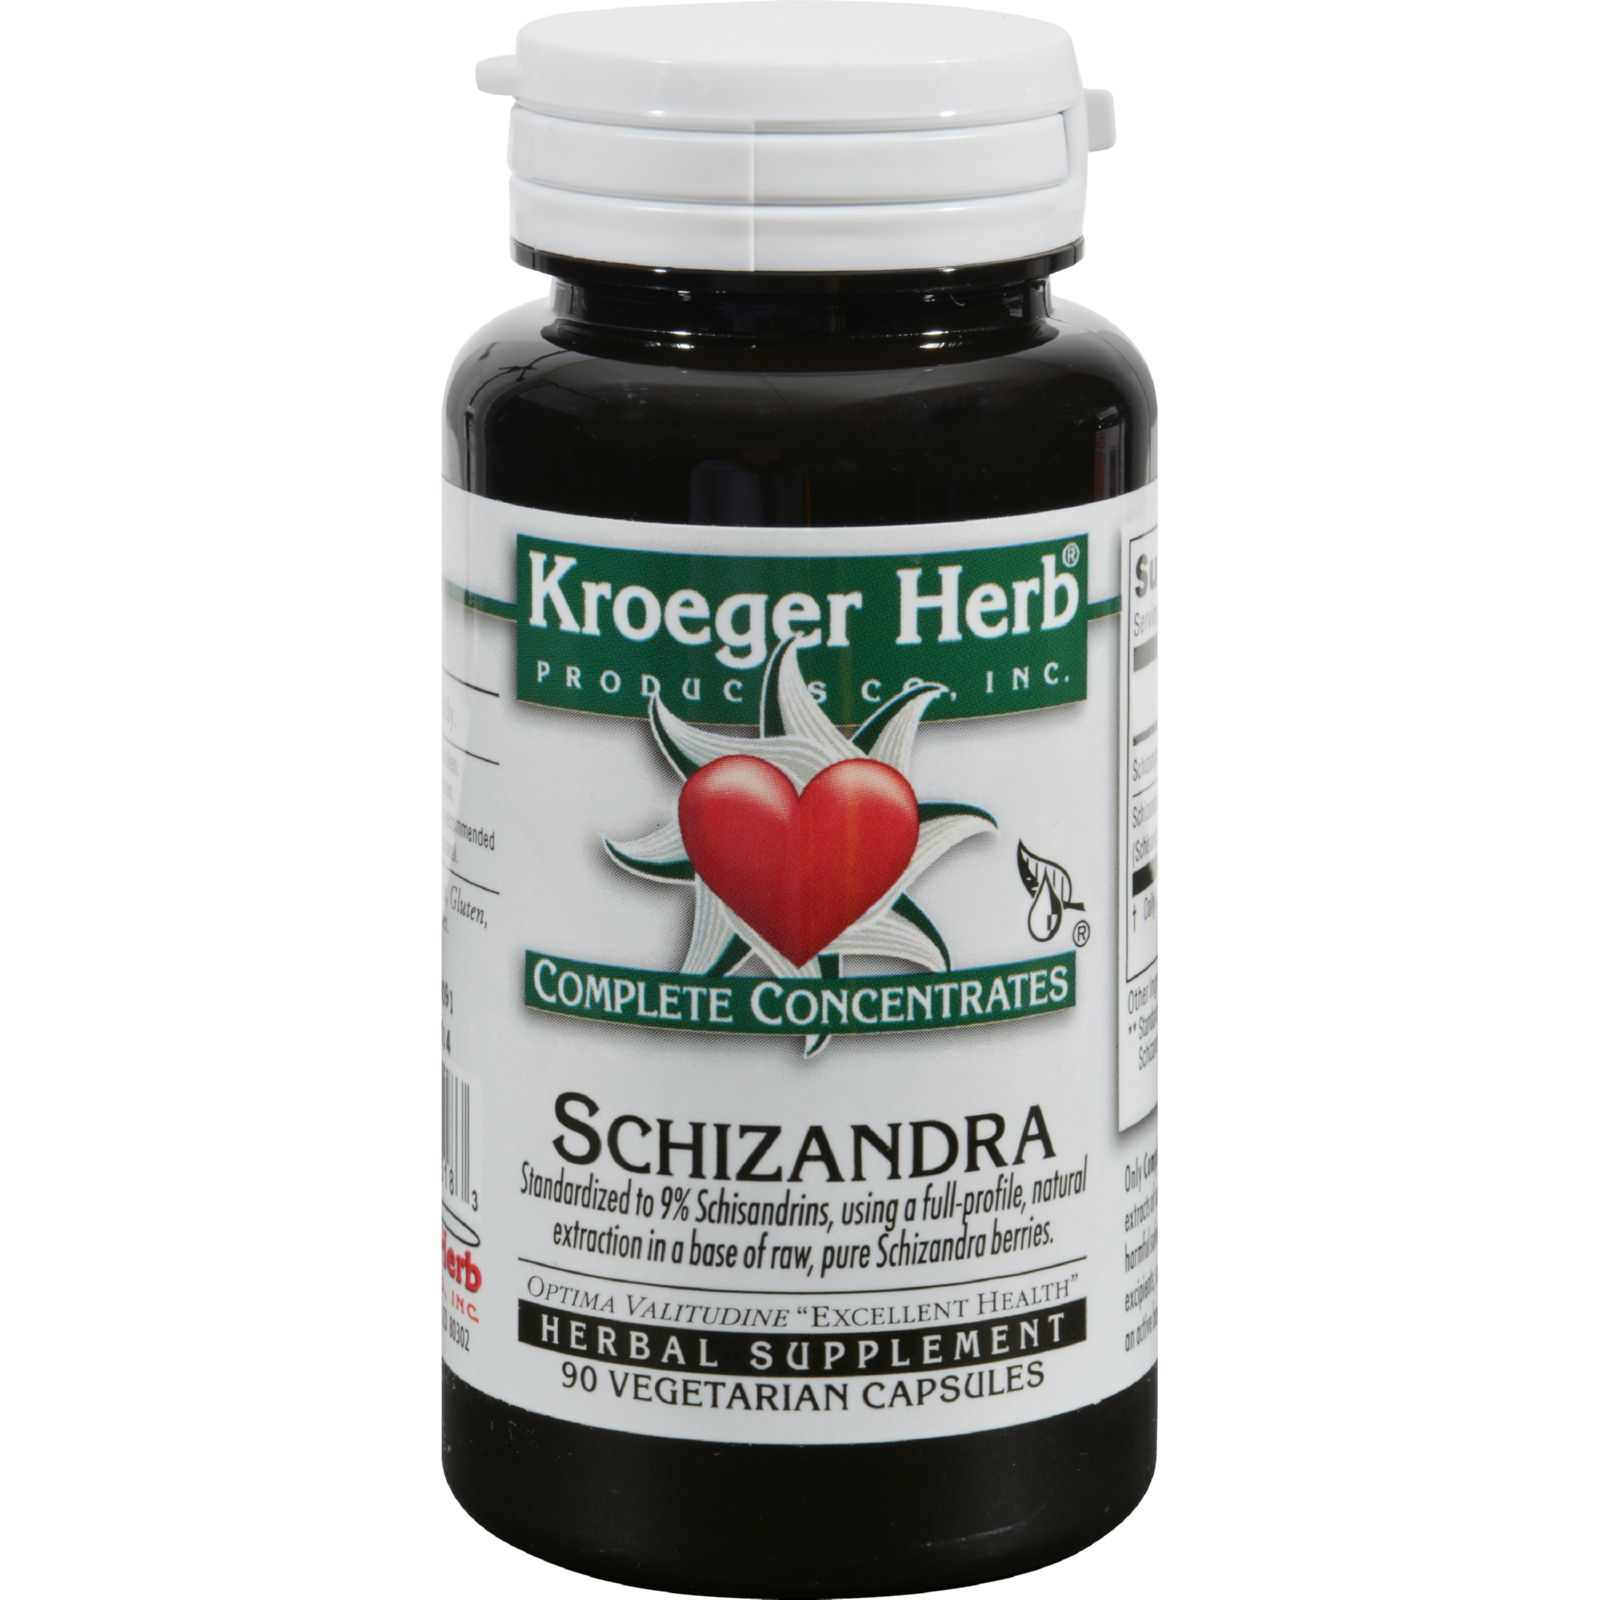 Kroeger Herb Products Kroeger Herb Complete Concentrates Schizandra, 90 ea